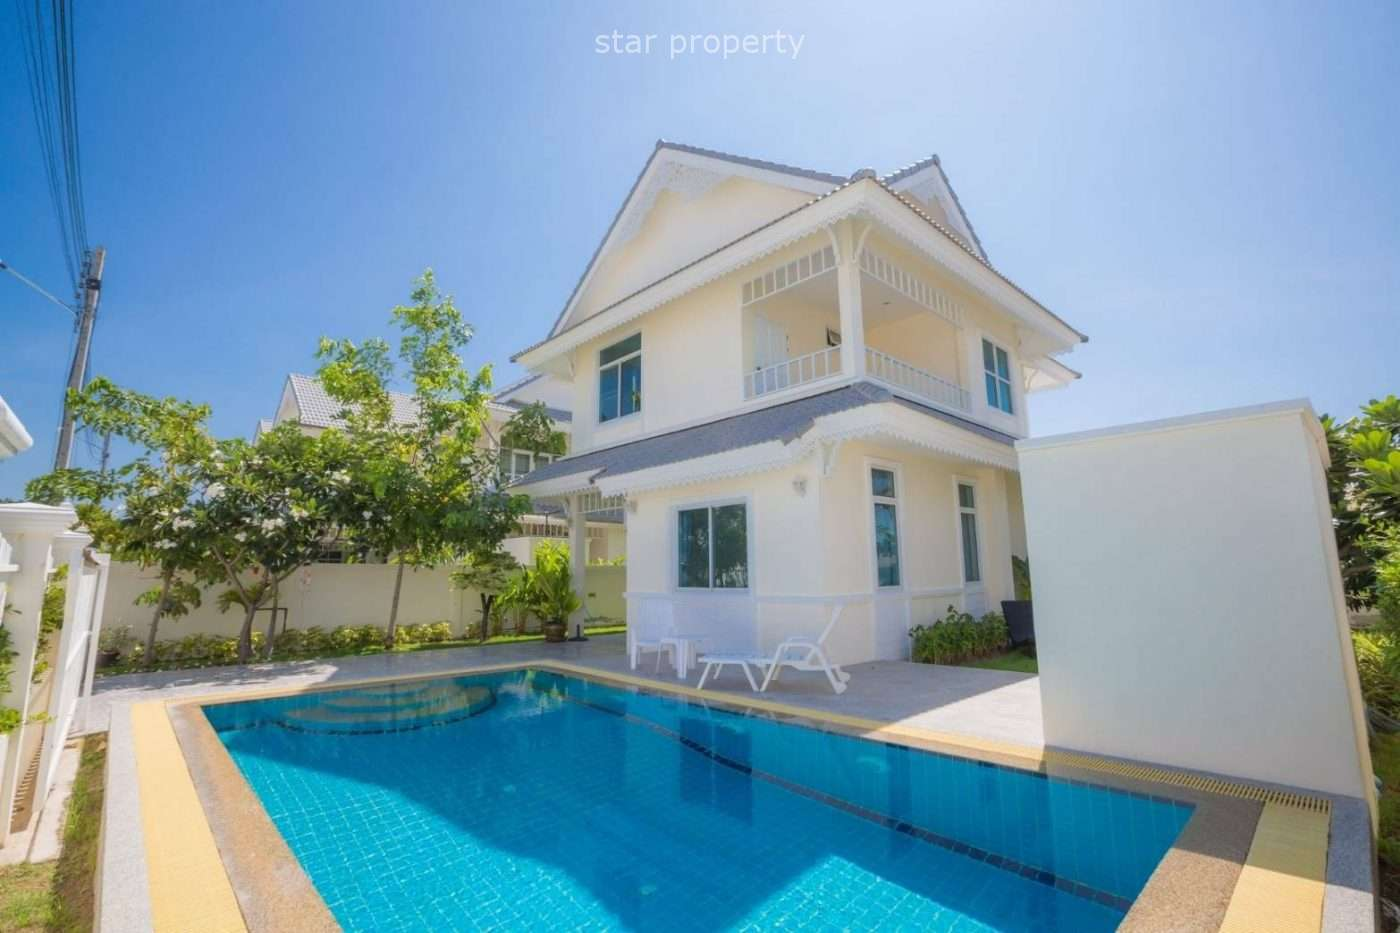 Stunning 2 Stories 3 beds pool villa at Cha Am for sale at Hua HinNice Breez Cha Am